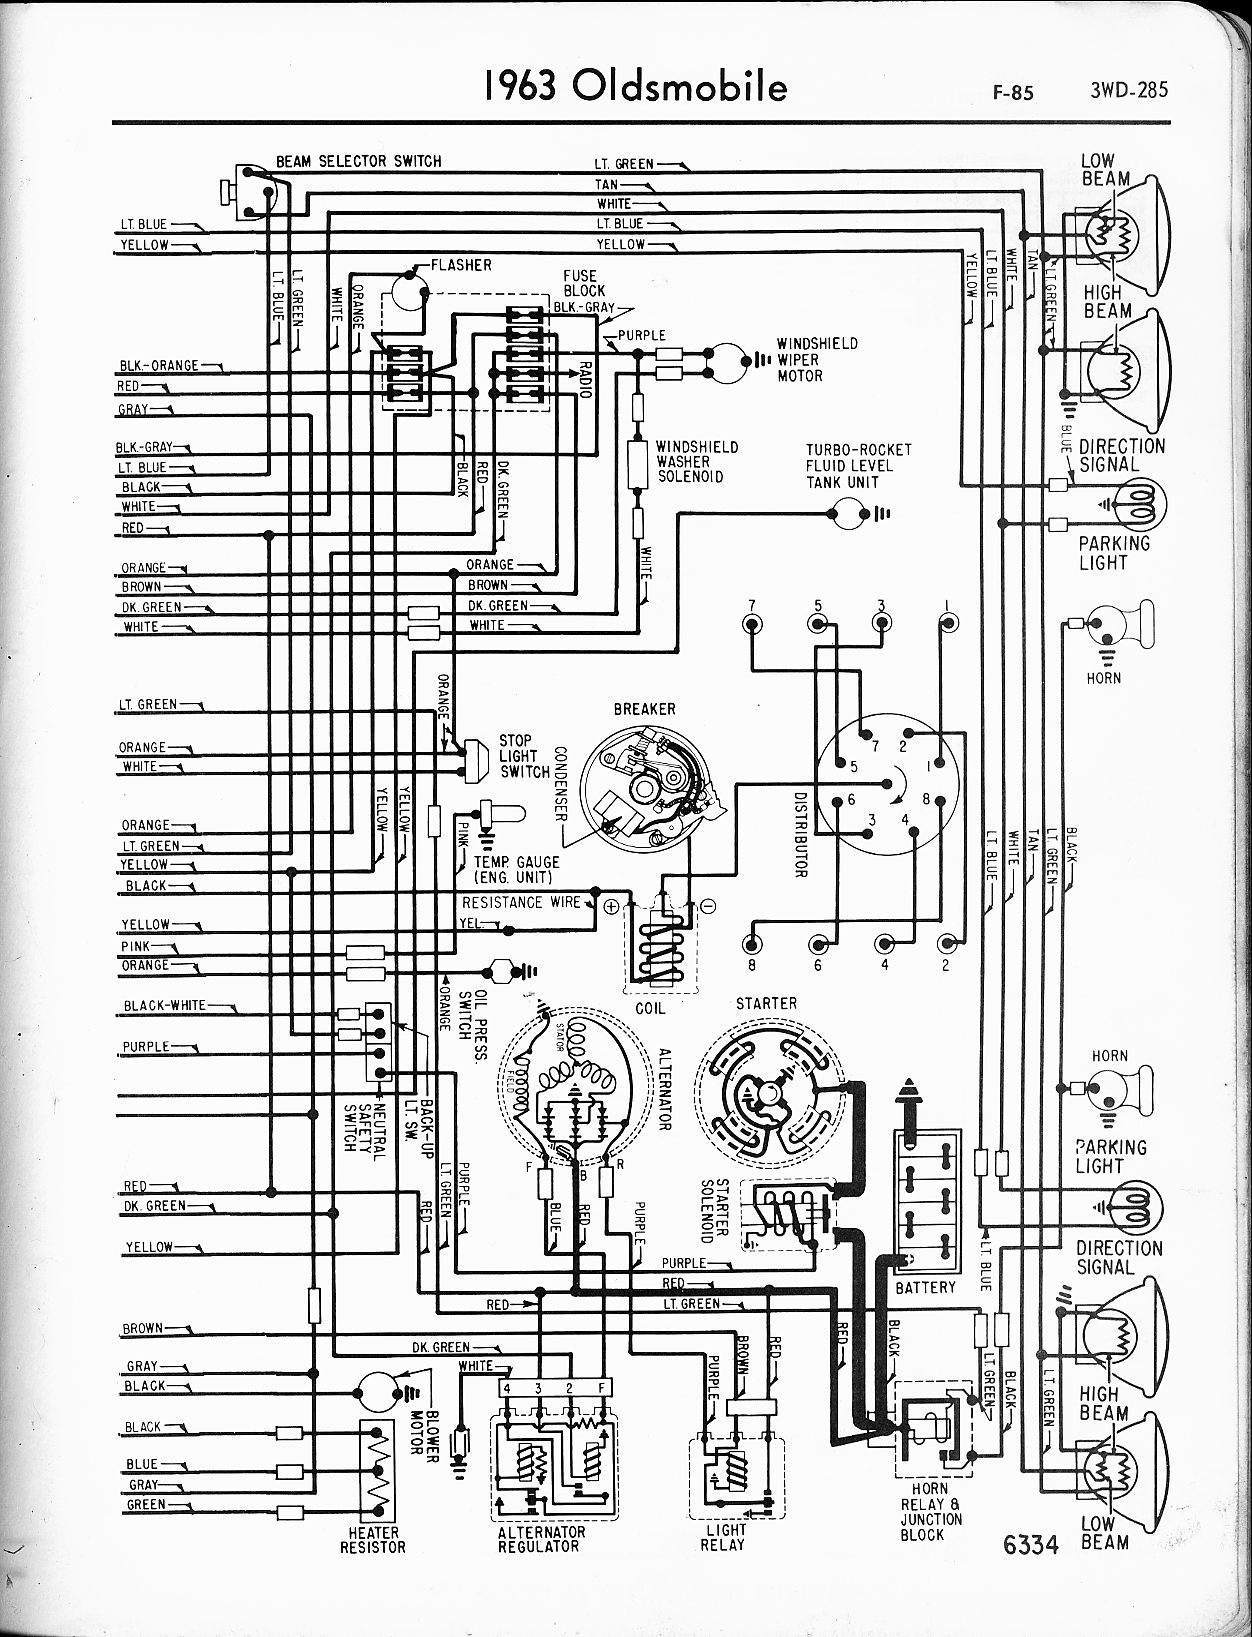 1950 oldsmobile 98 wiring diagrams oldsmobile wiring diagrams - the old car manual project 1950 studebaker champion wiring diagrams